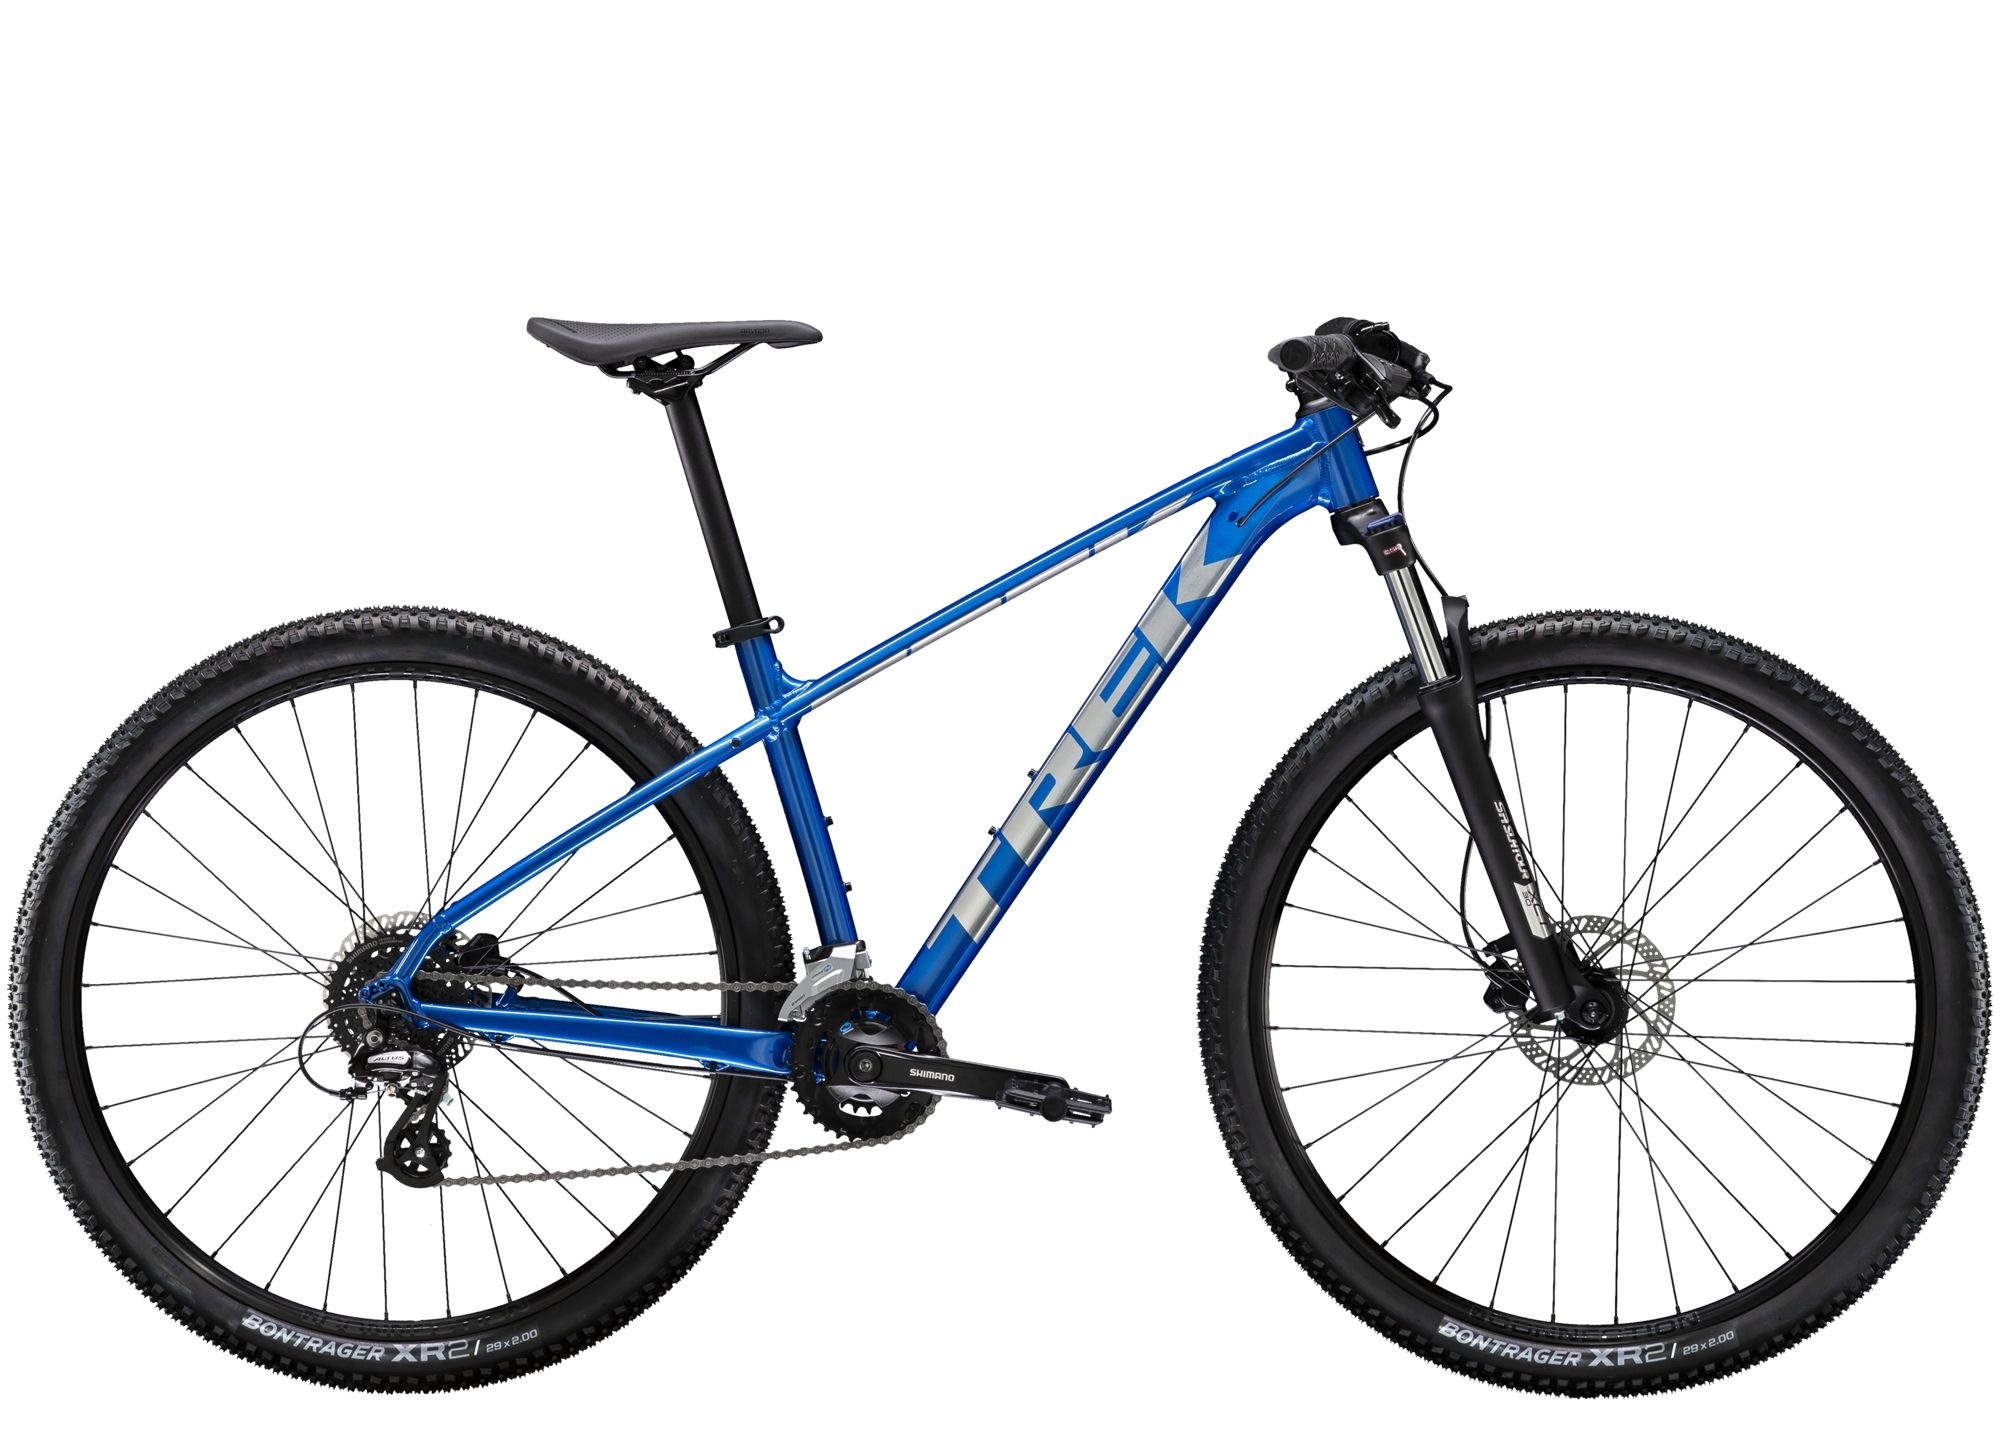 021 Trek Marlin 6 Mens Hardtail Mountain Bike In Alpine Blue In 2020 Hardtail Mountain Bike Trek Mountain Bike Bike